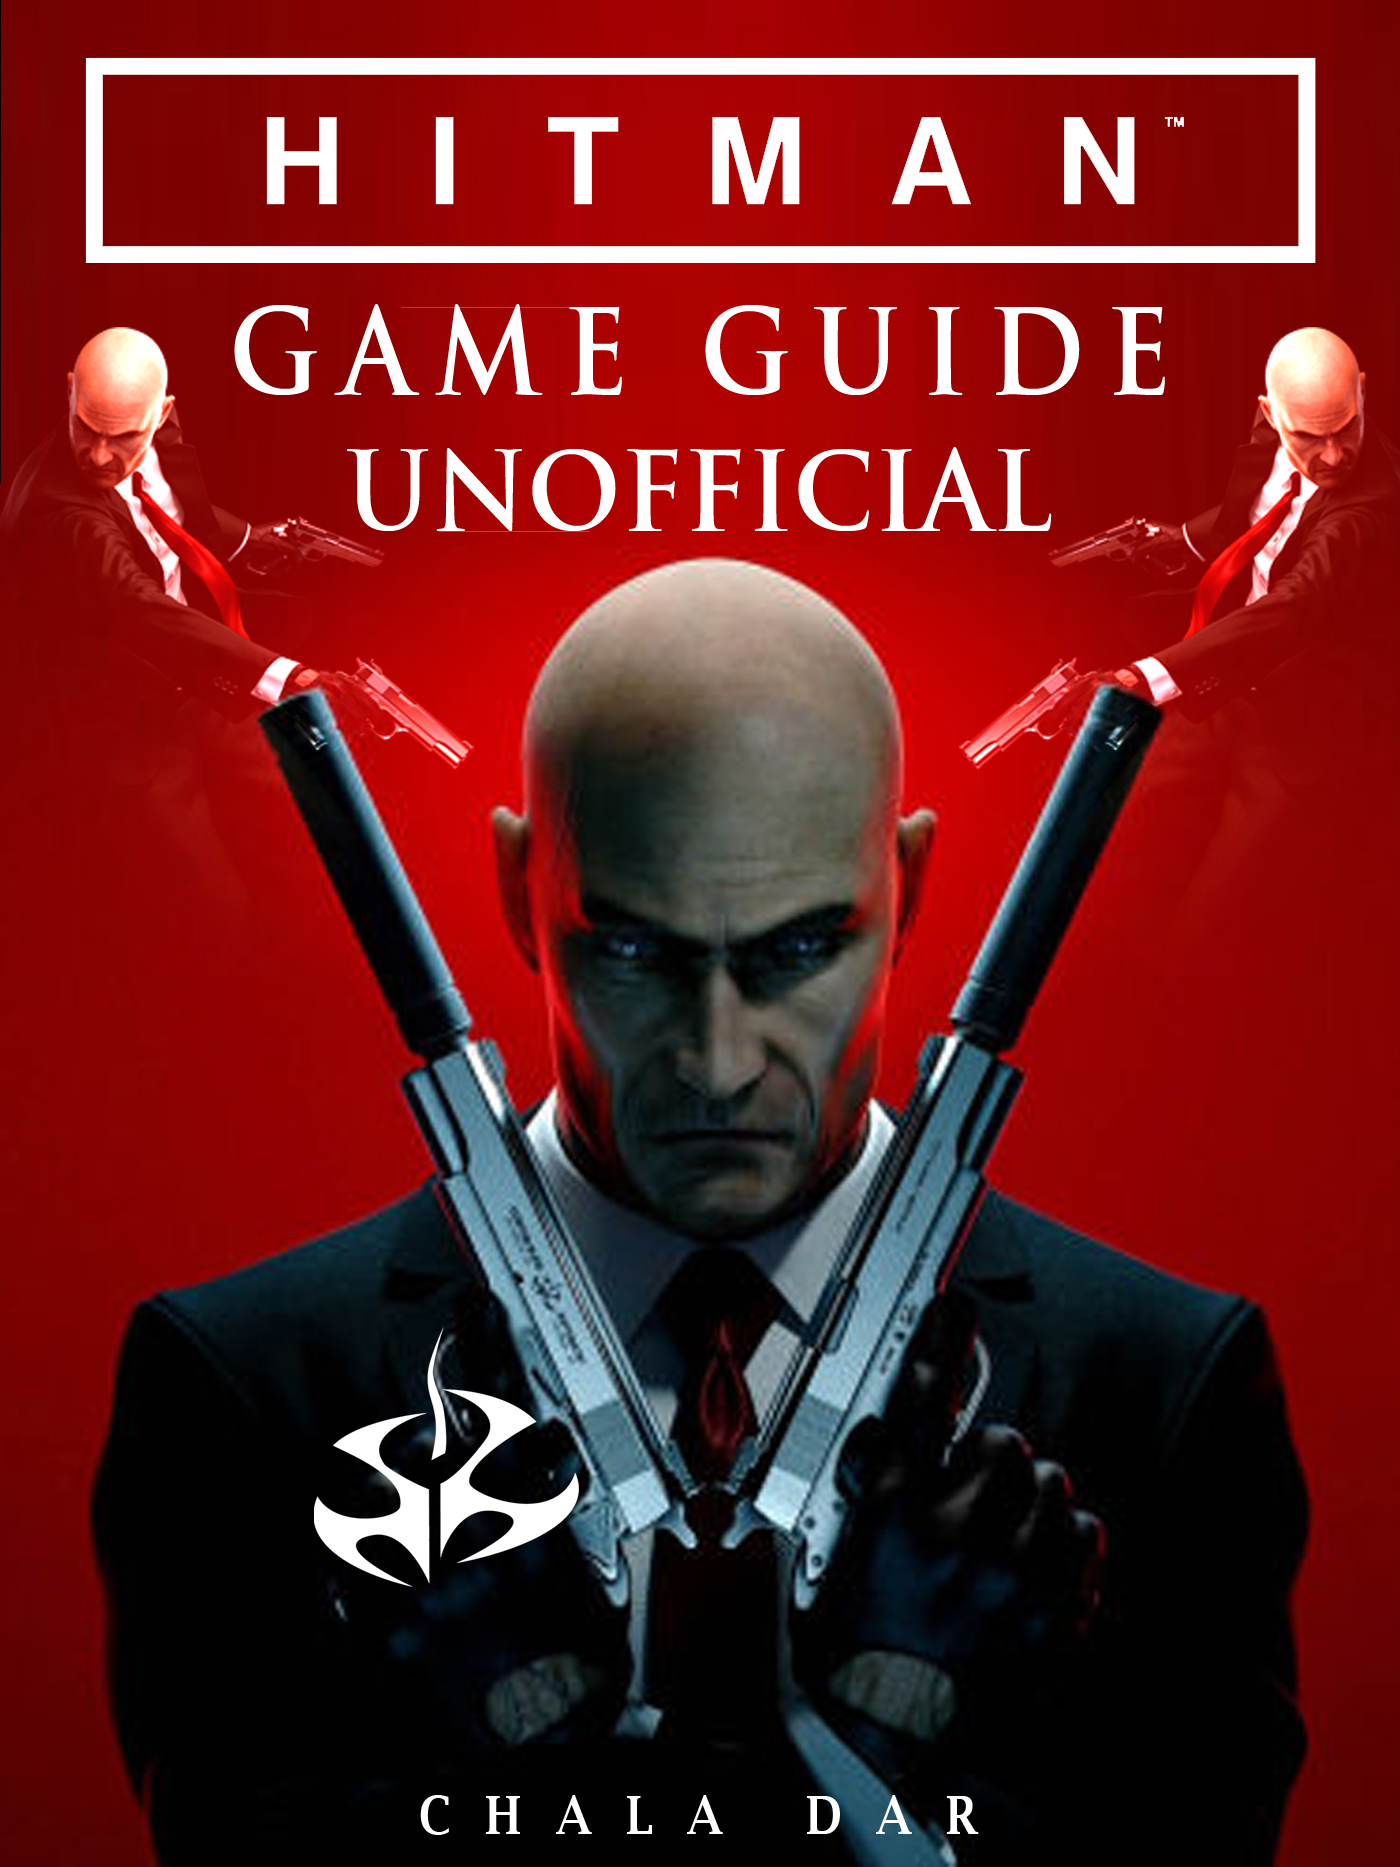 Hitman Game Guide Unofficial By Chala Dar